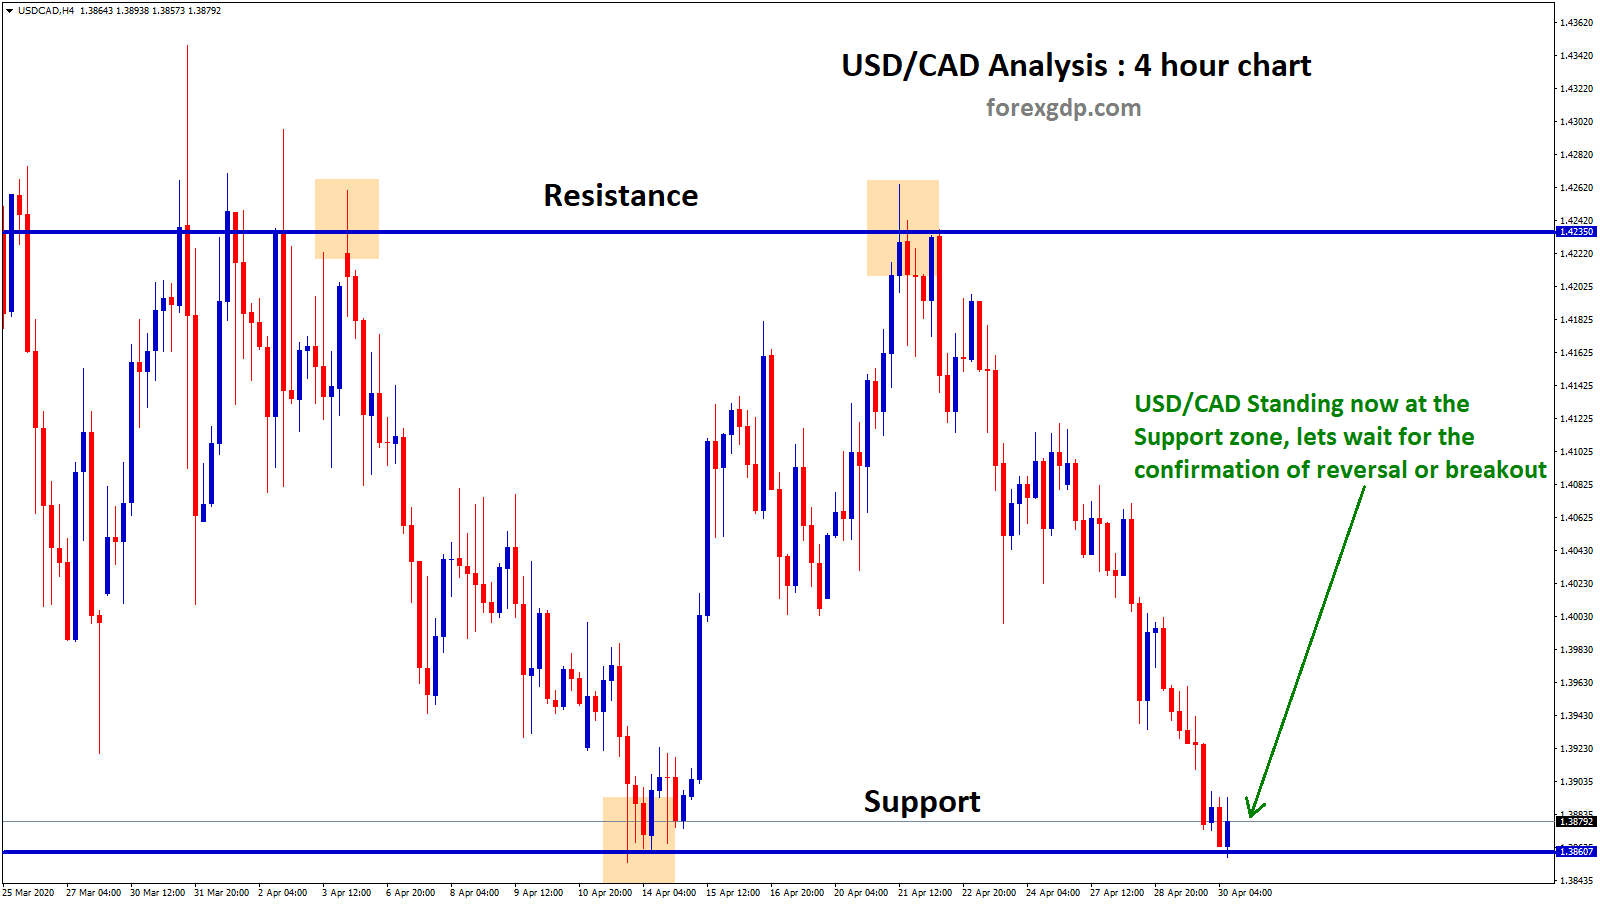 usd cad in support zone in 4 hour chart